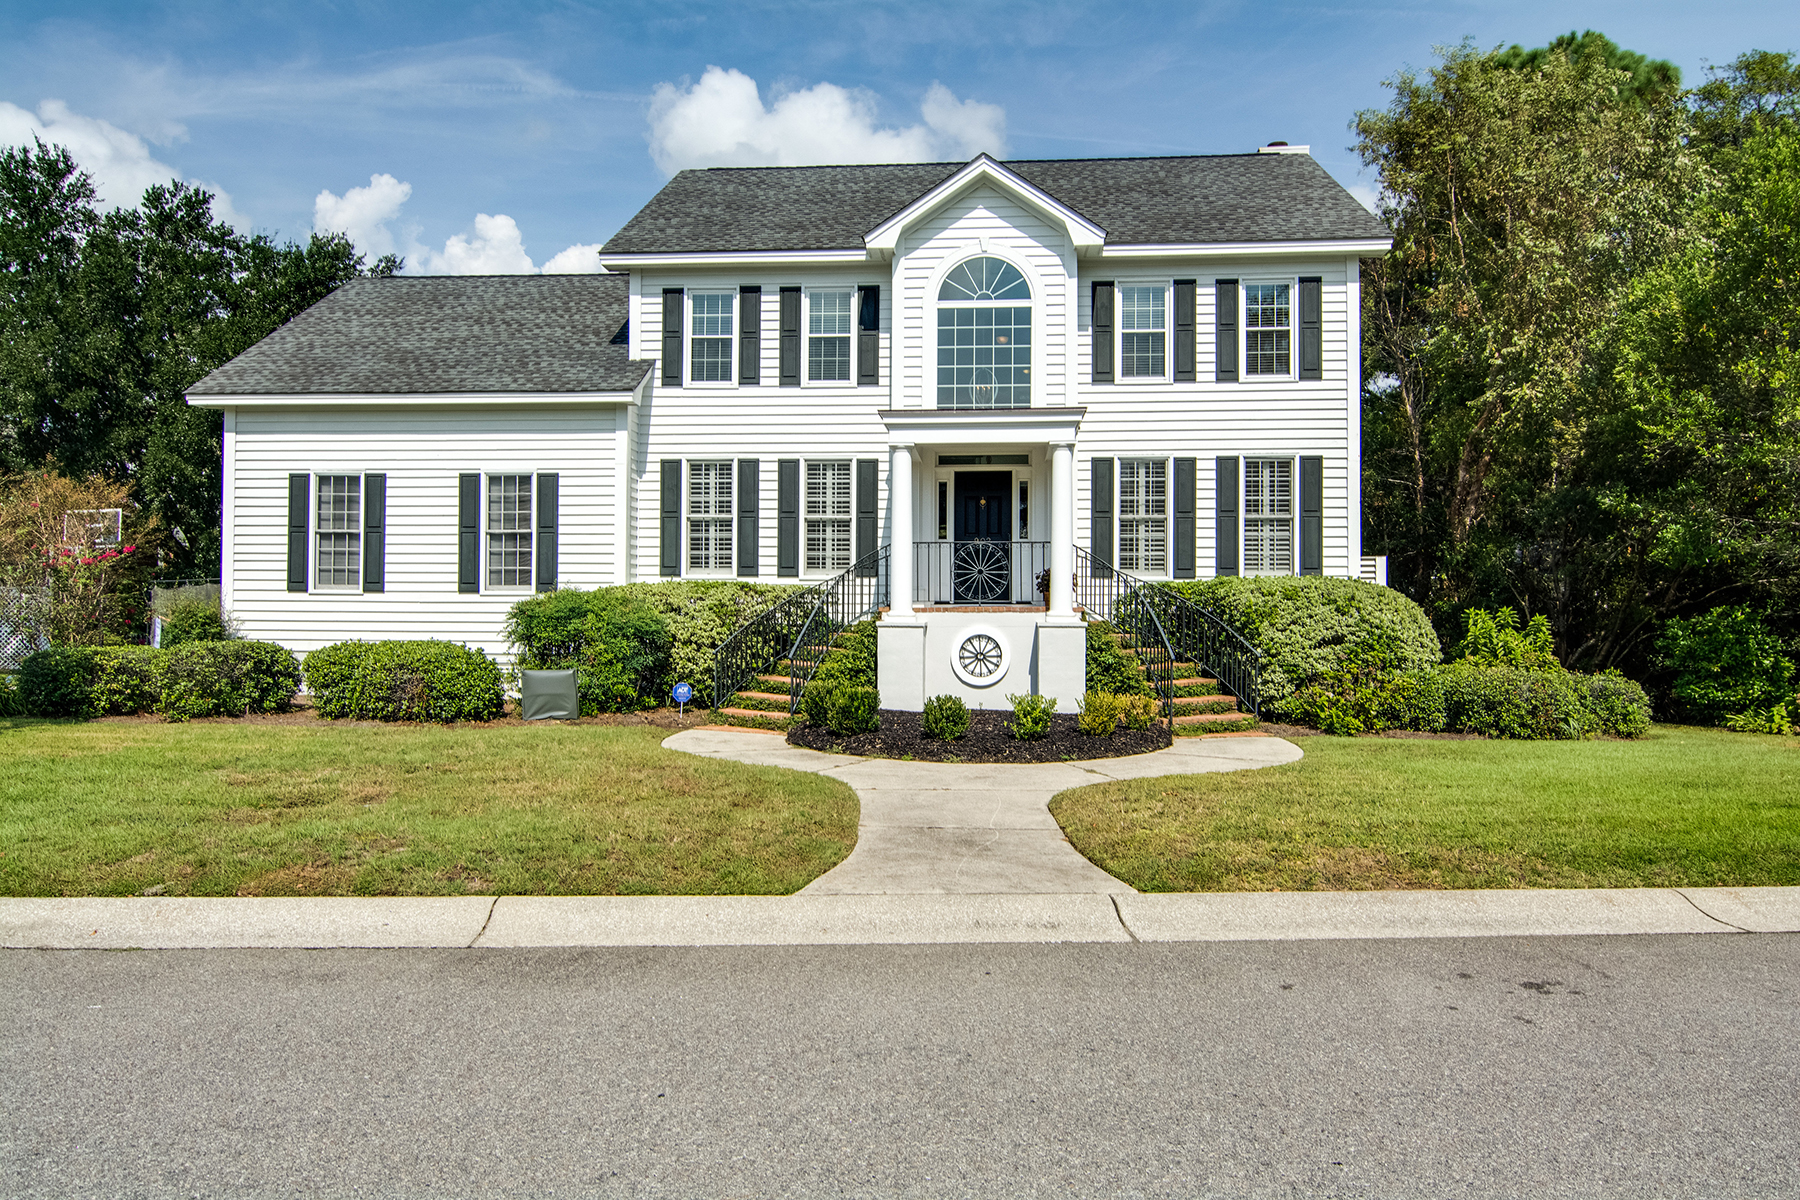 Single Family Home for Sale at Classic Lowcountry Home 902 Parrot Creek Way Charleston, South Carolina, 29412 United States